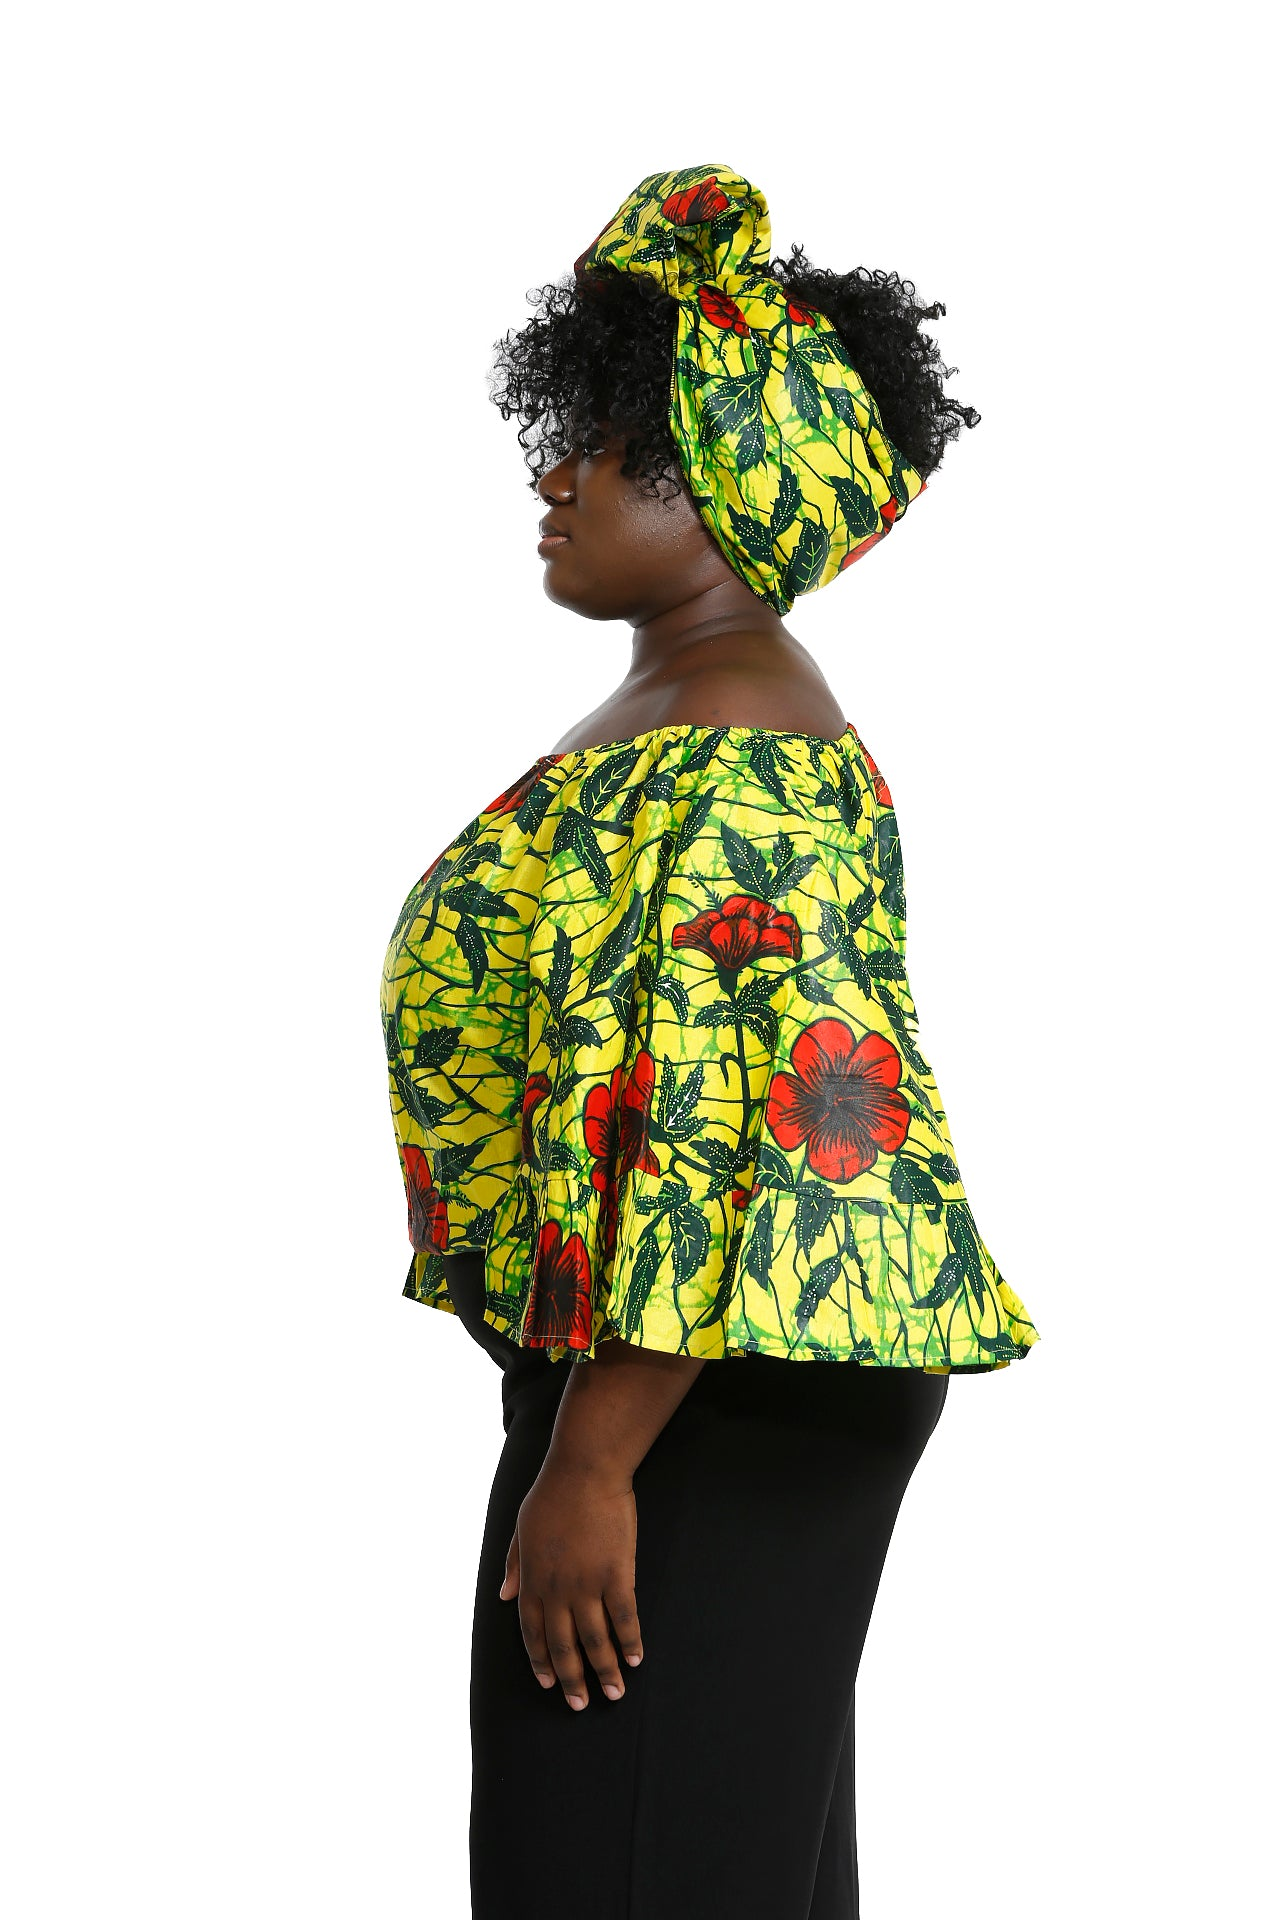 Jardin African Fabric Butterly Top and Headwrap